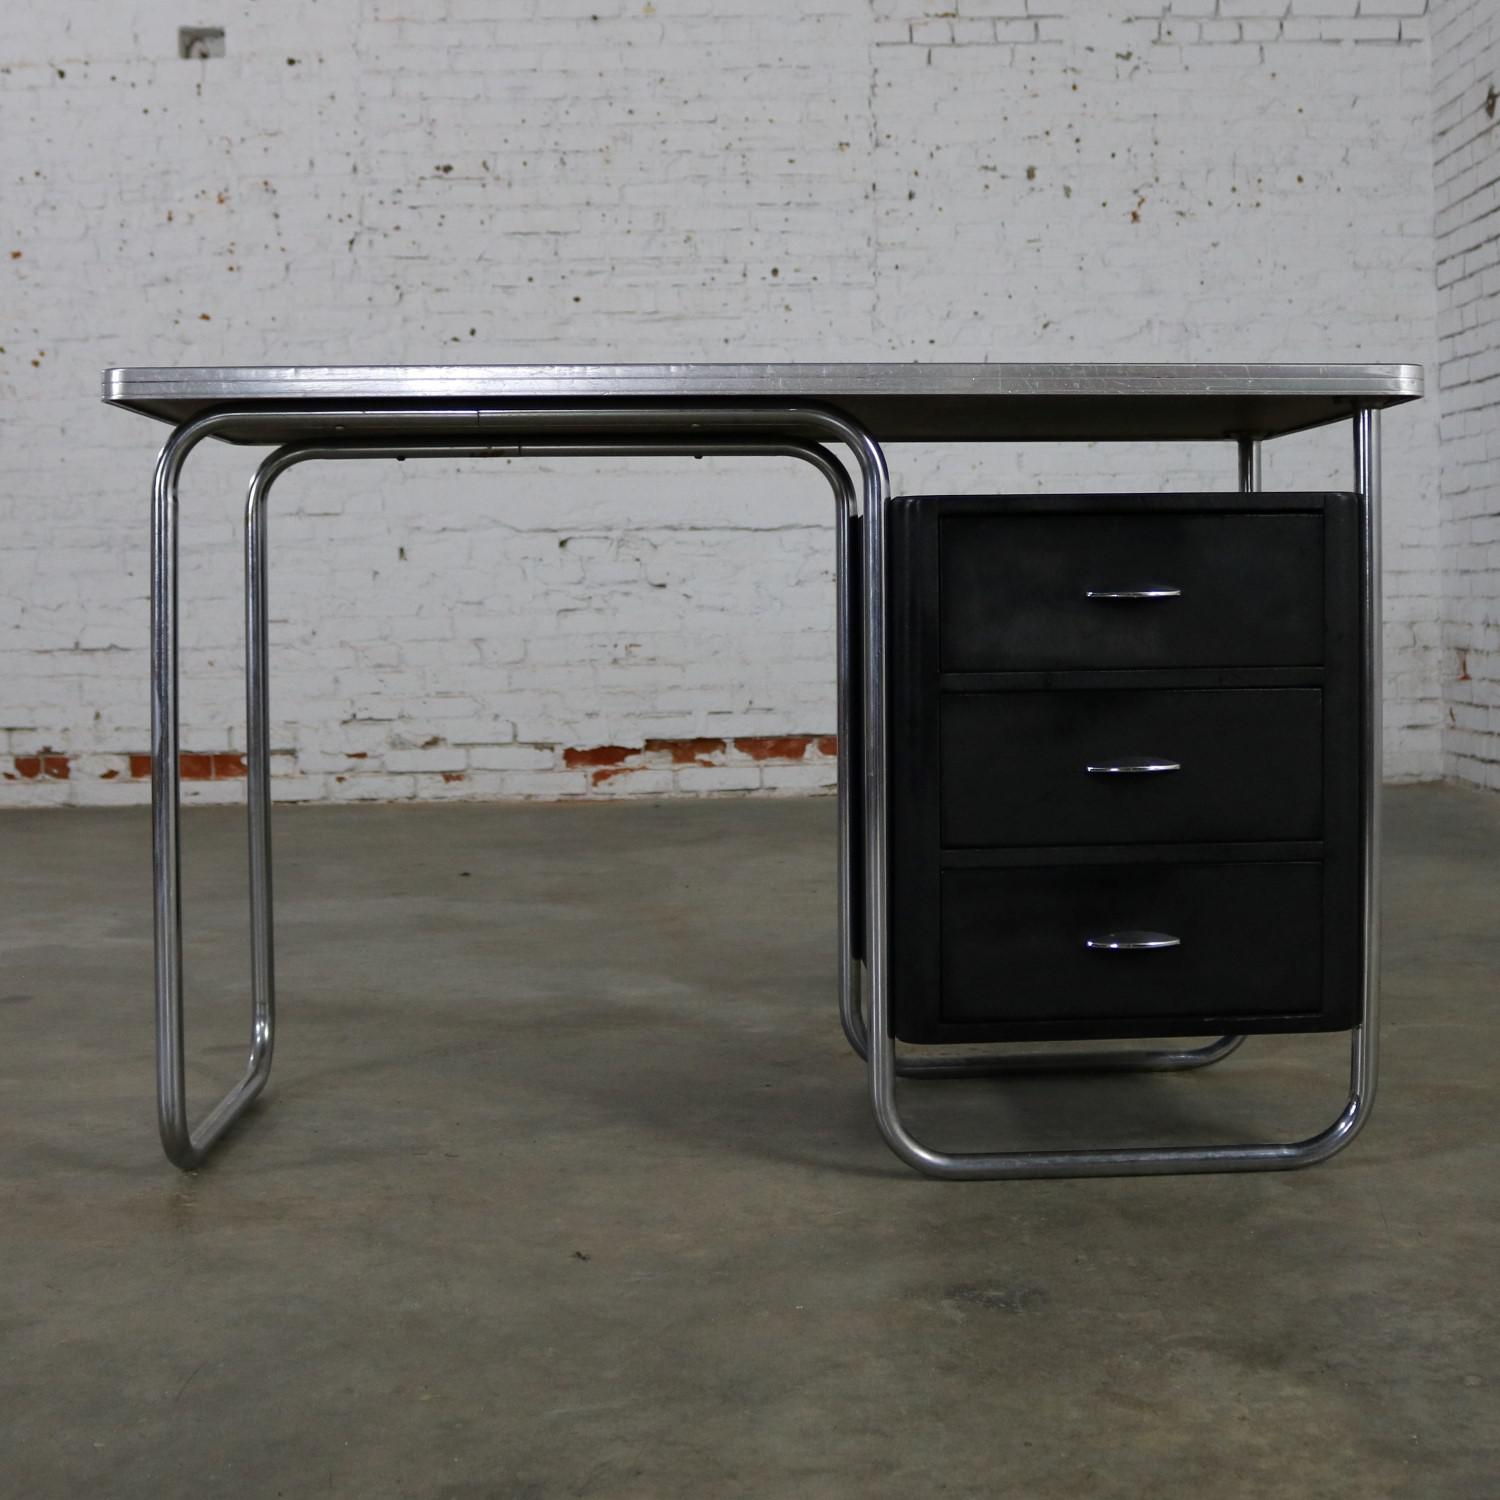 Art Deco Streamline Moderne Machine Age Desk By Walter Dorwin Teague For  Texaco   Image 3